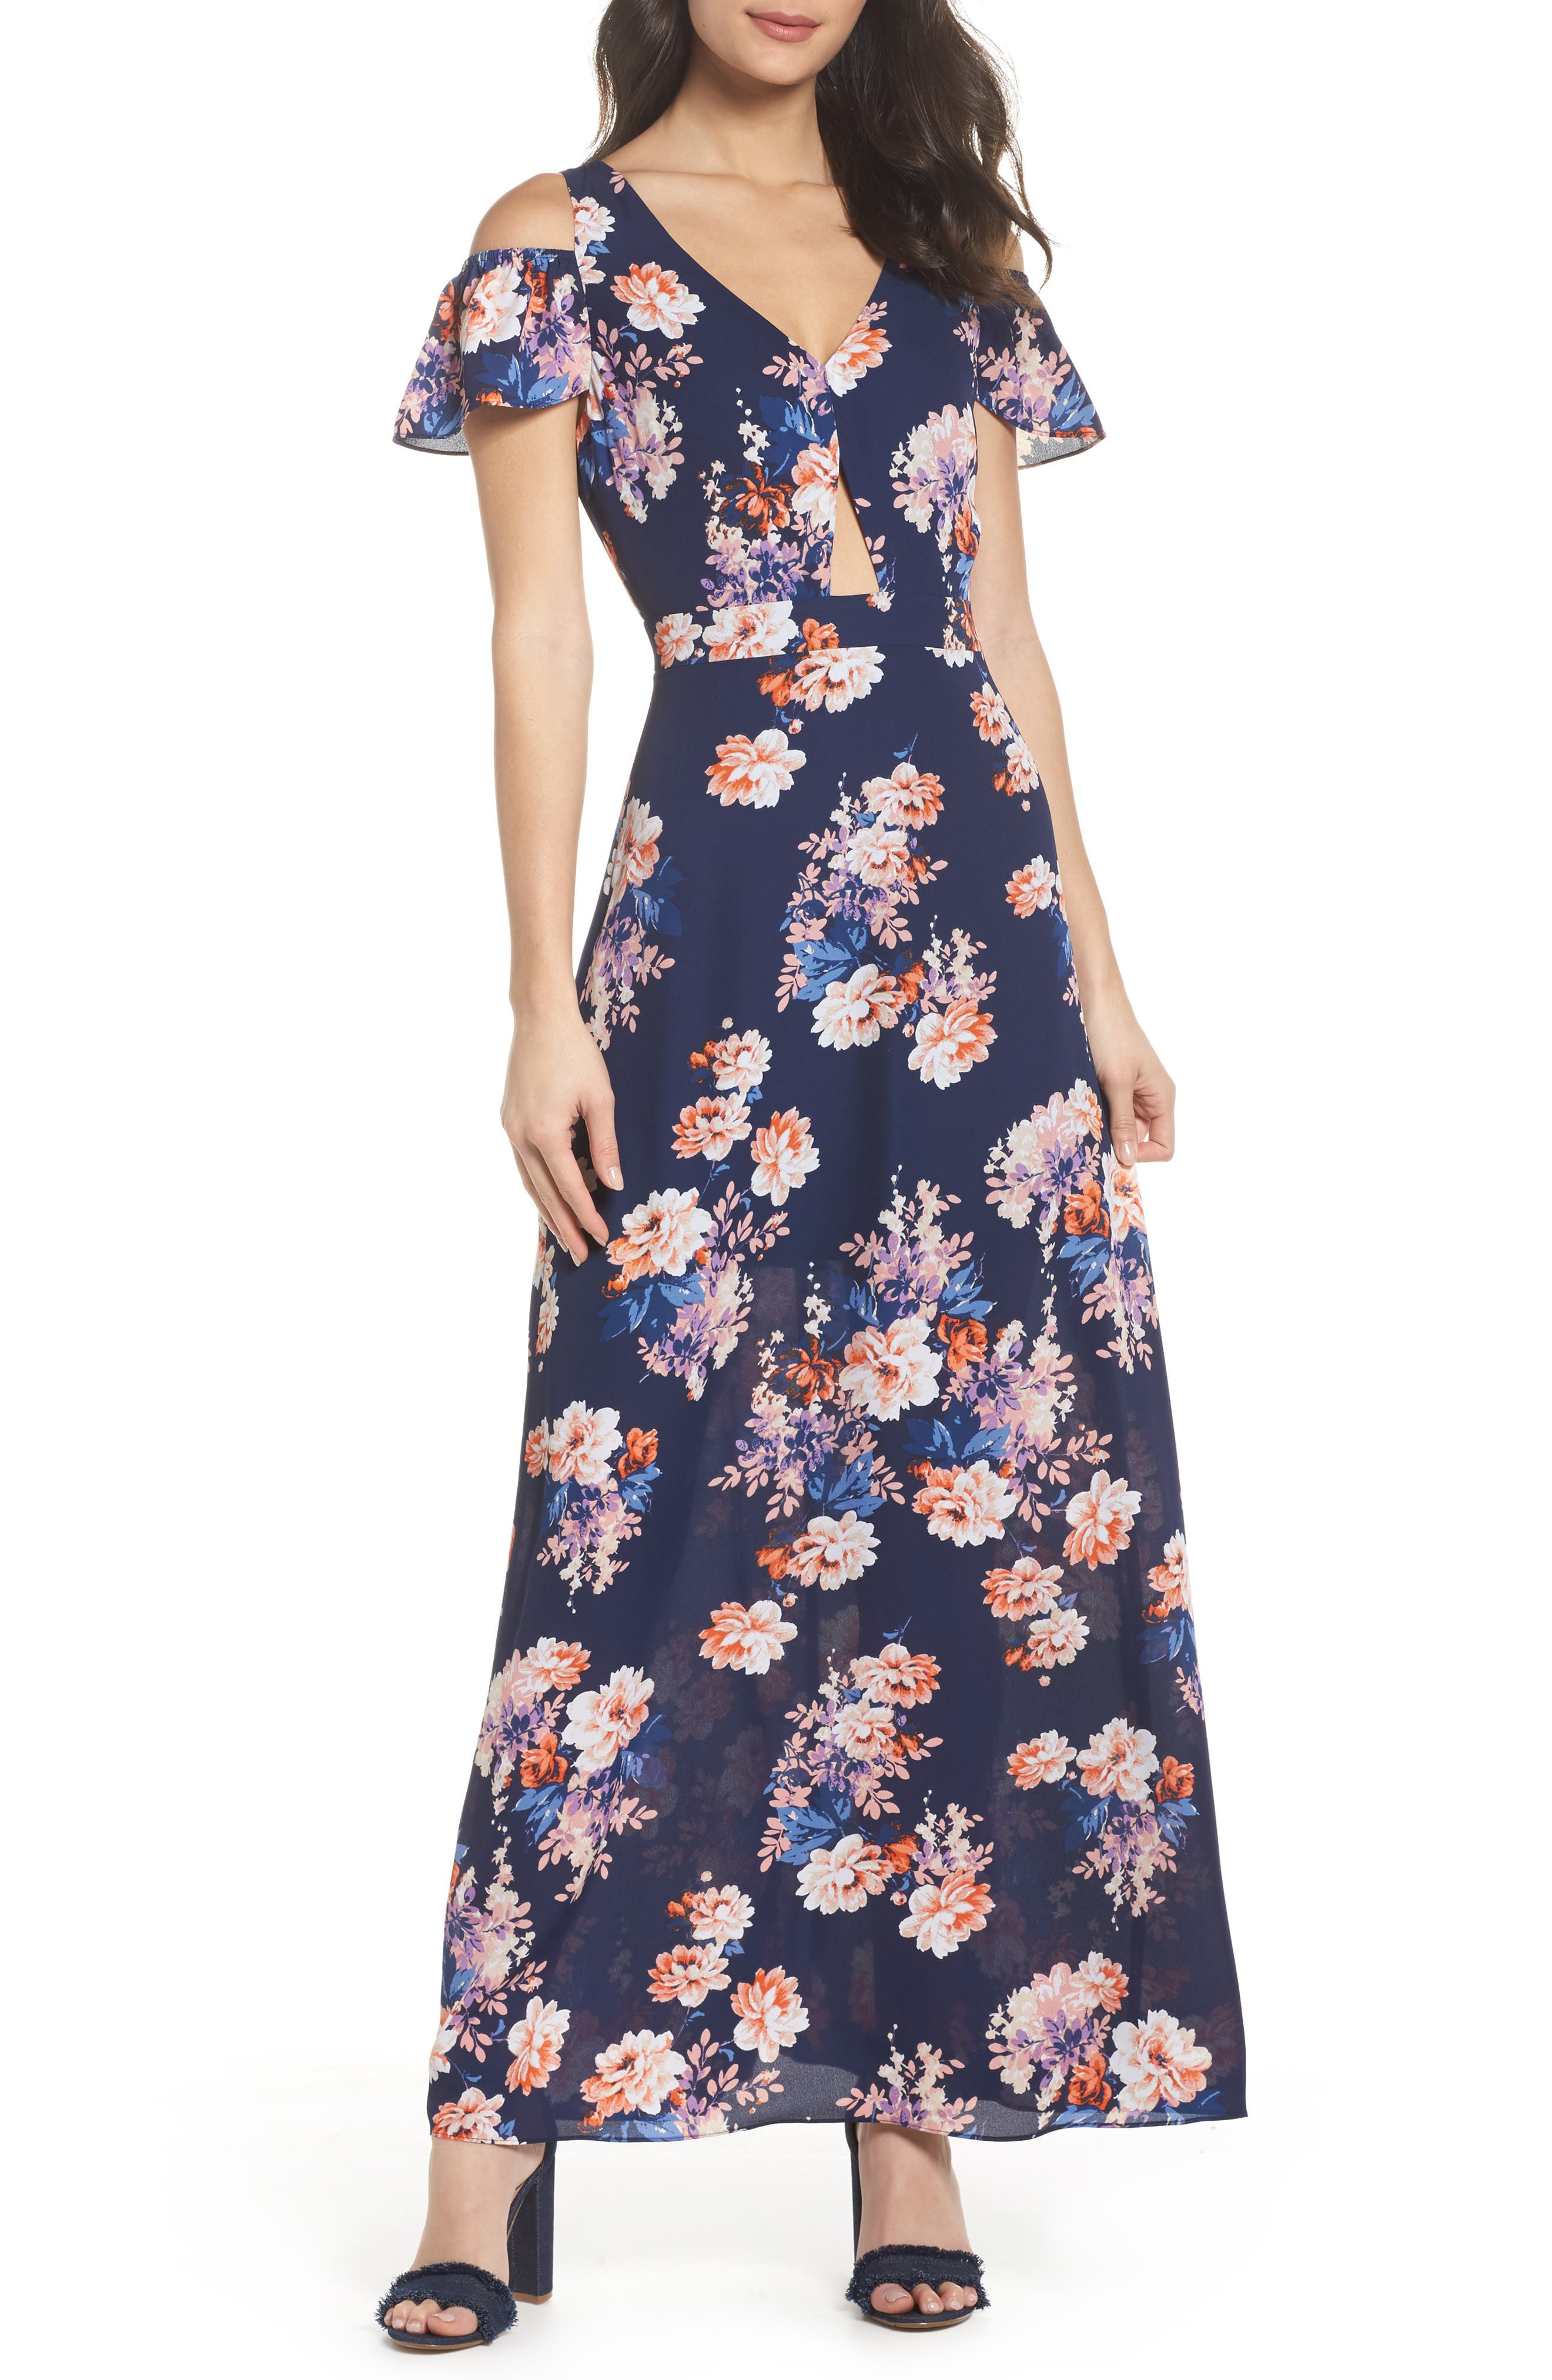 Chasing Butterflies Maxi Dress,                         Main,                         color, Navy Floral